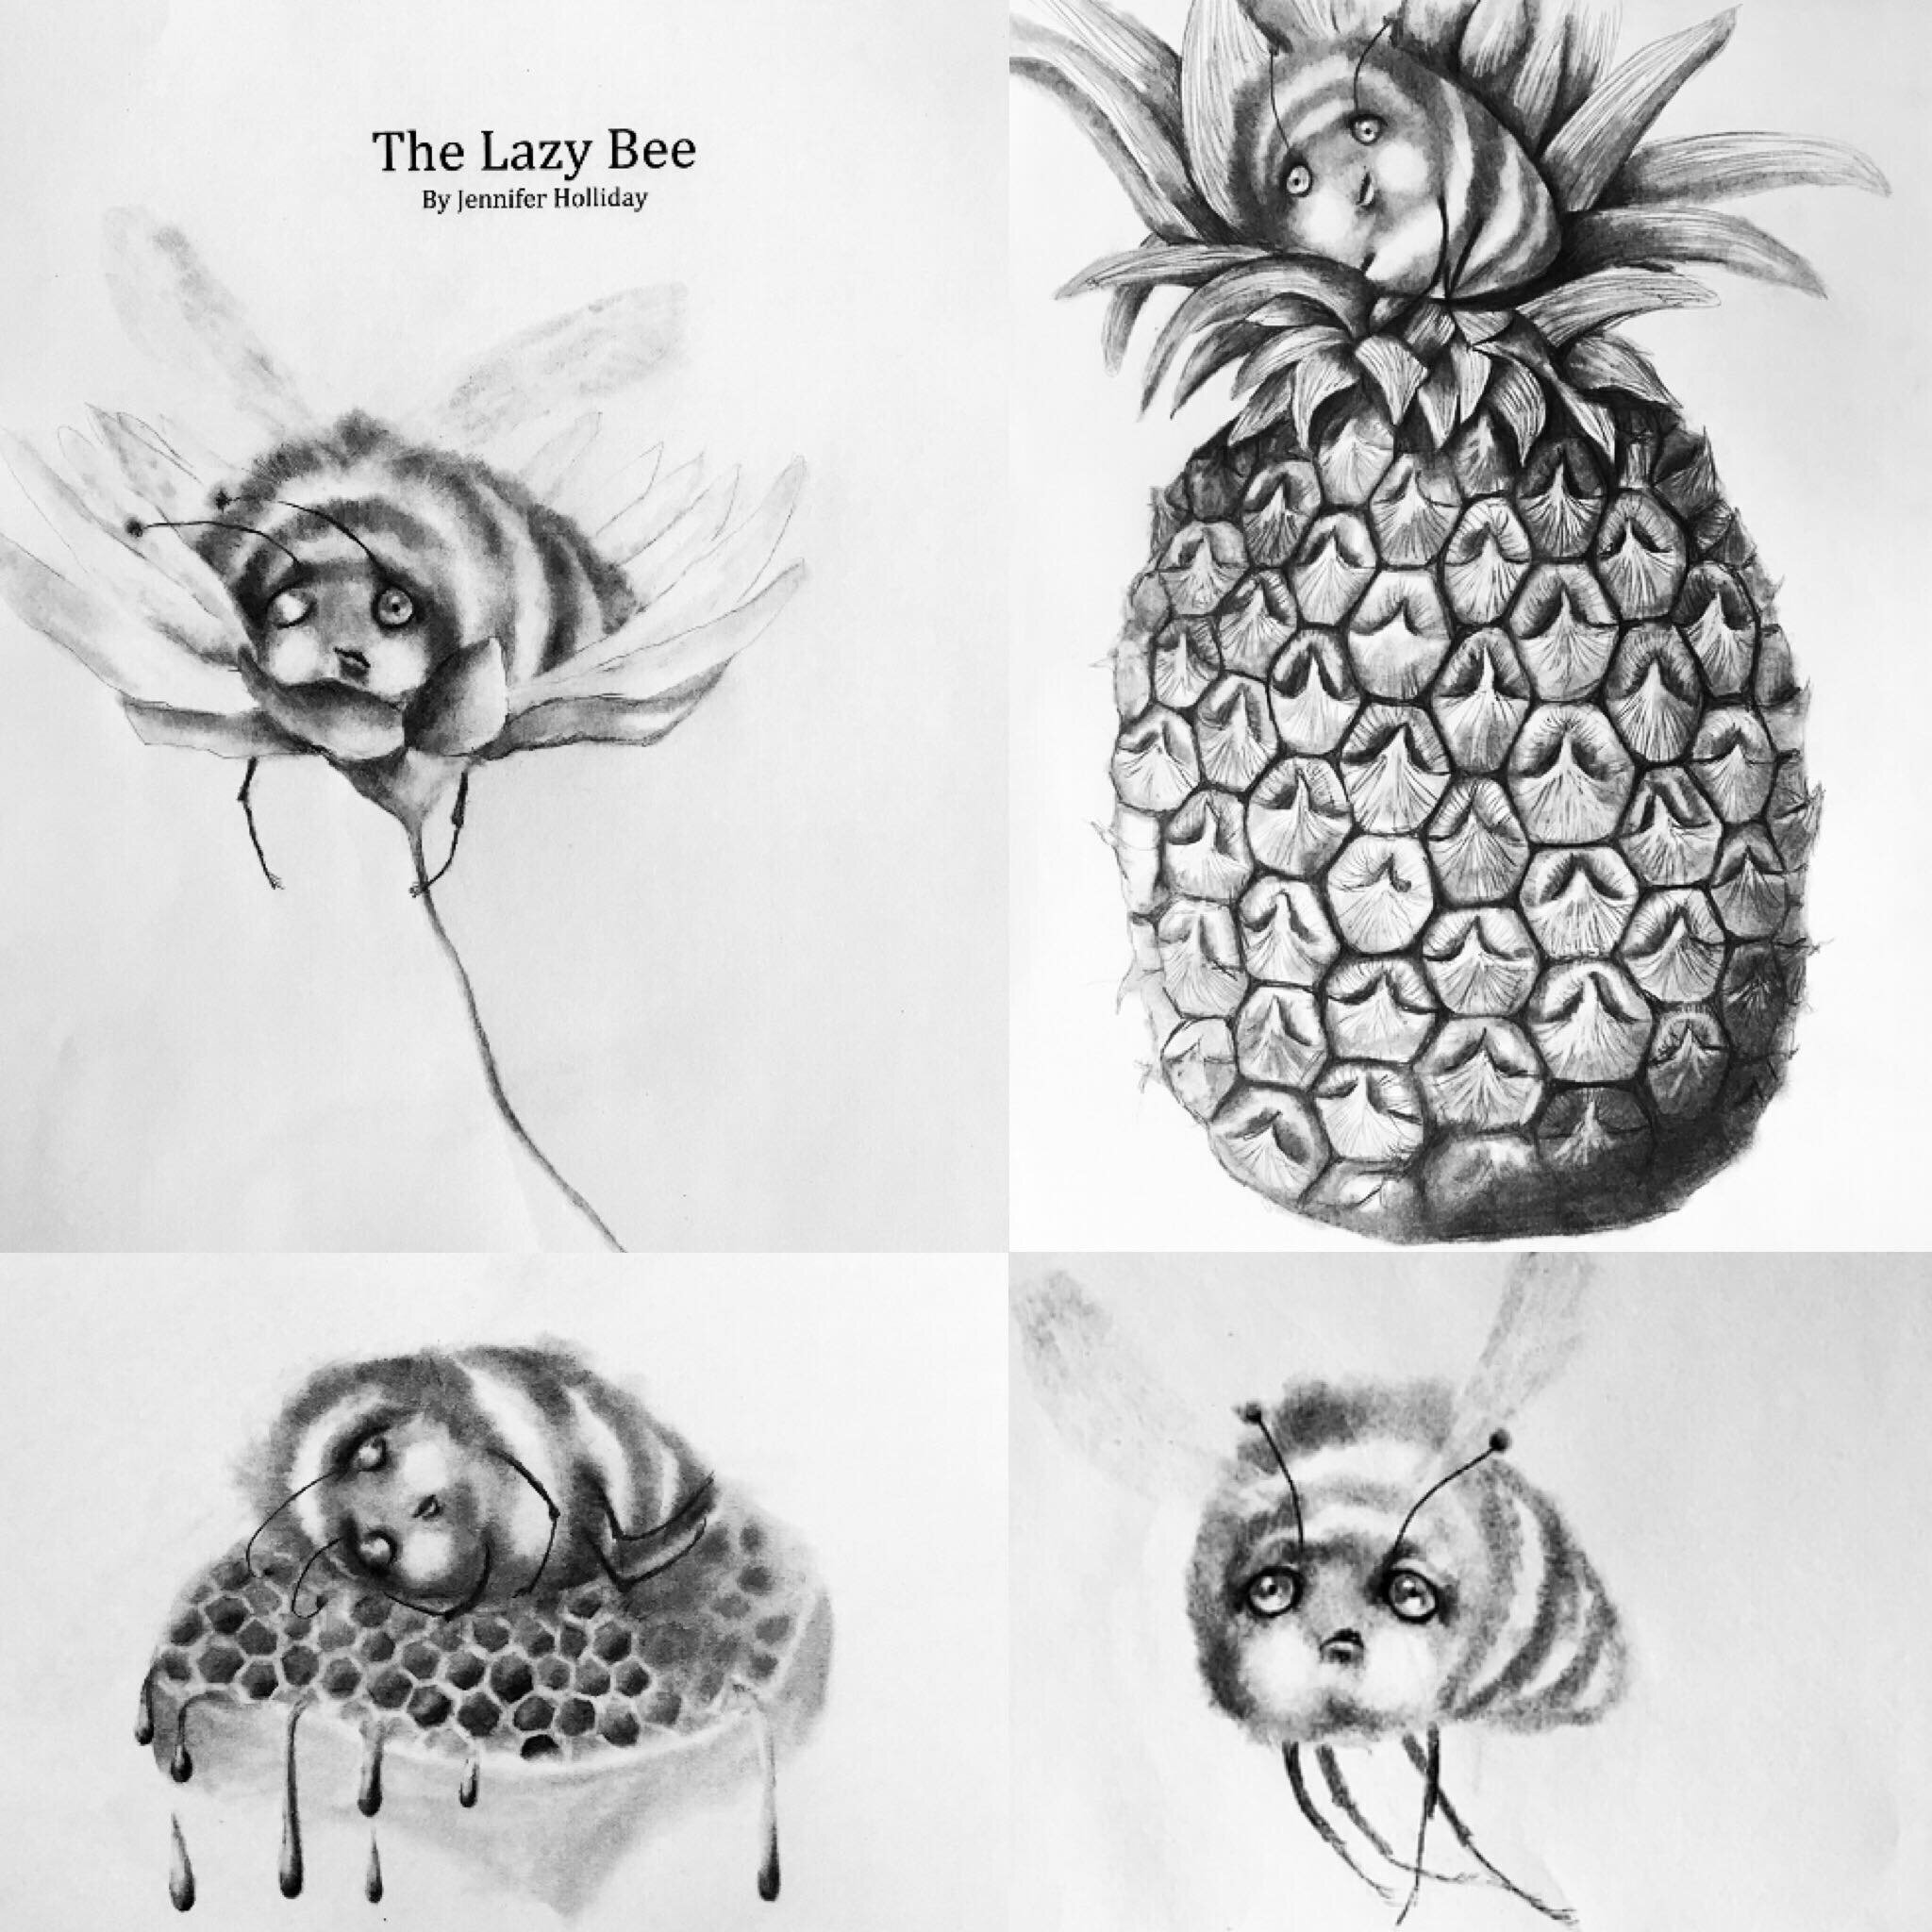 The Lazy Bee   Written by Jennifer Holliday    Illustrated by Rebecca Miller   Coming Winter 2019